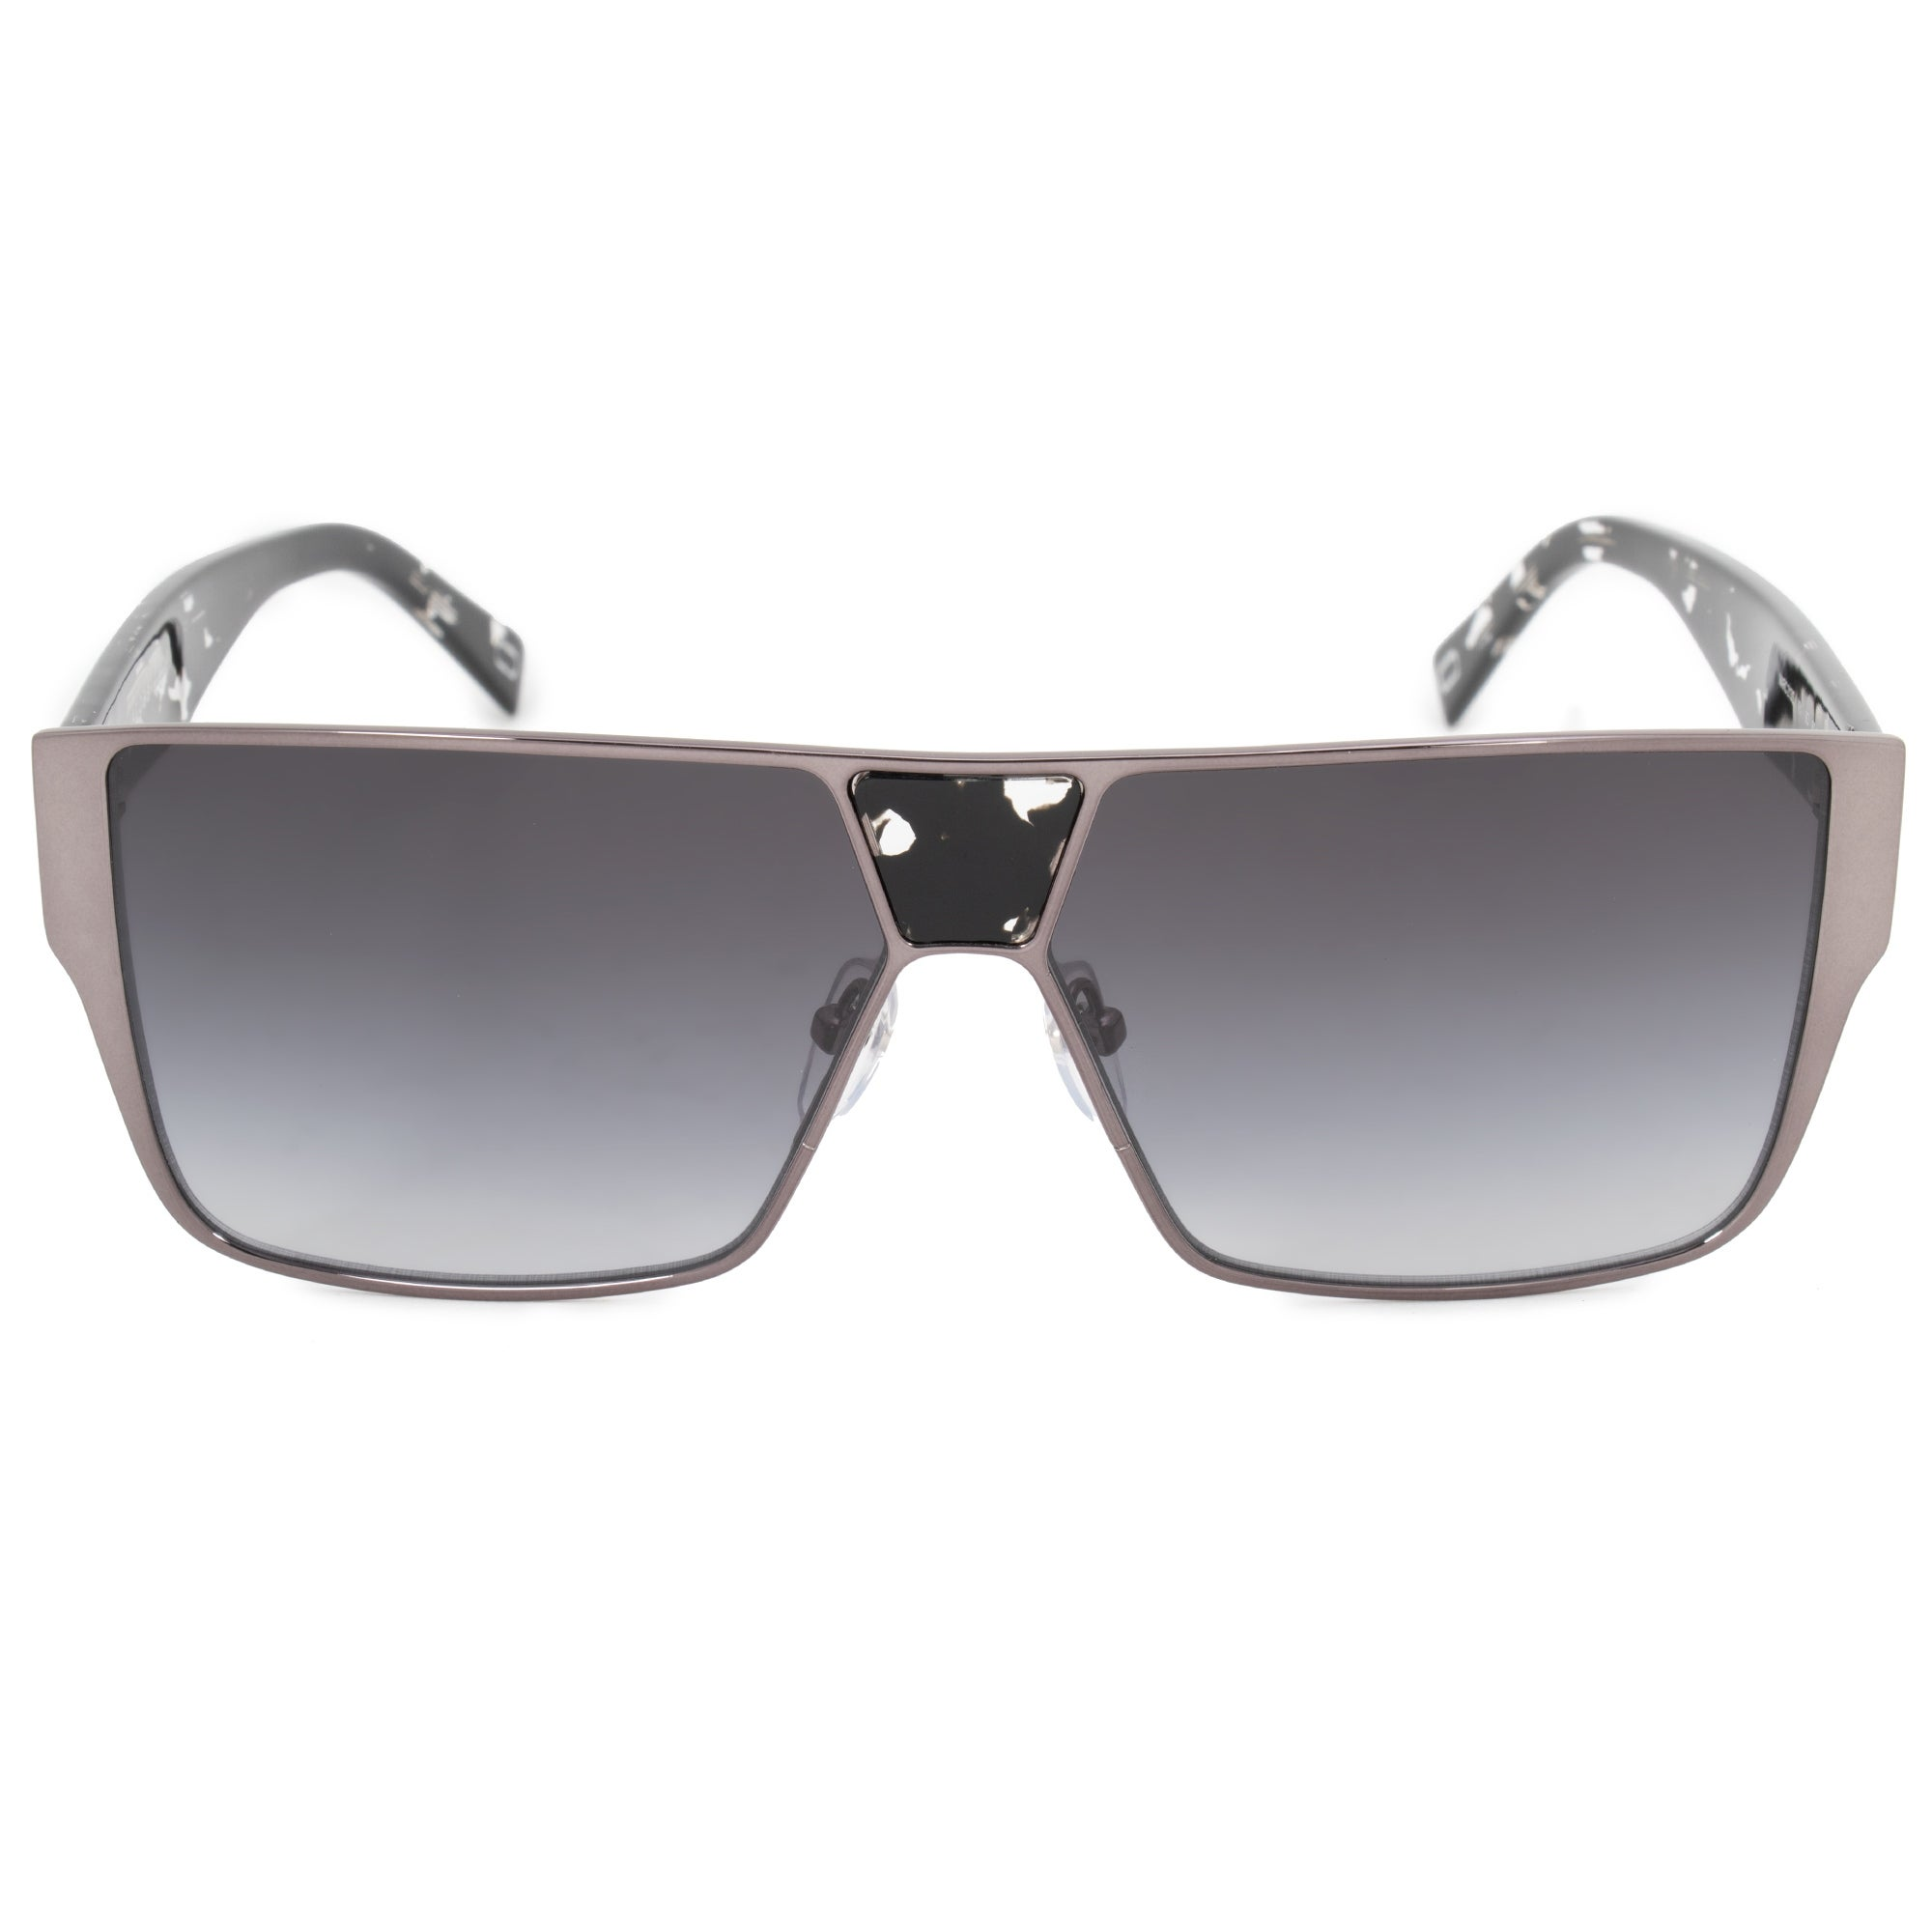 1051c9875ed2 Marc Jacobs Women's Sunglasses | Find Great Sunglasses Deals Shopping at  Overstock